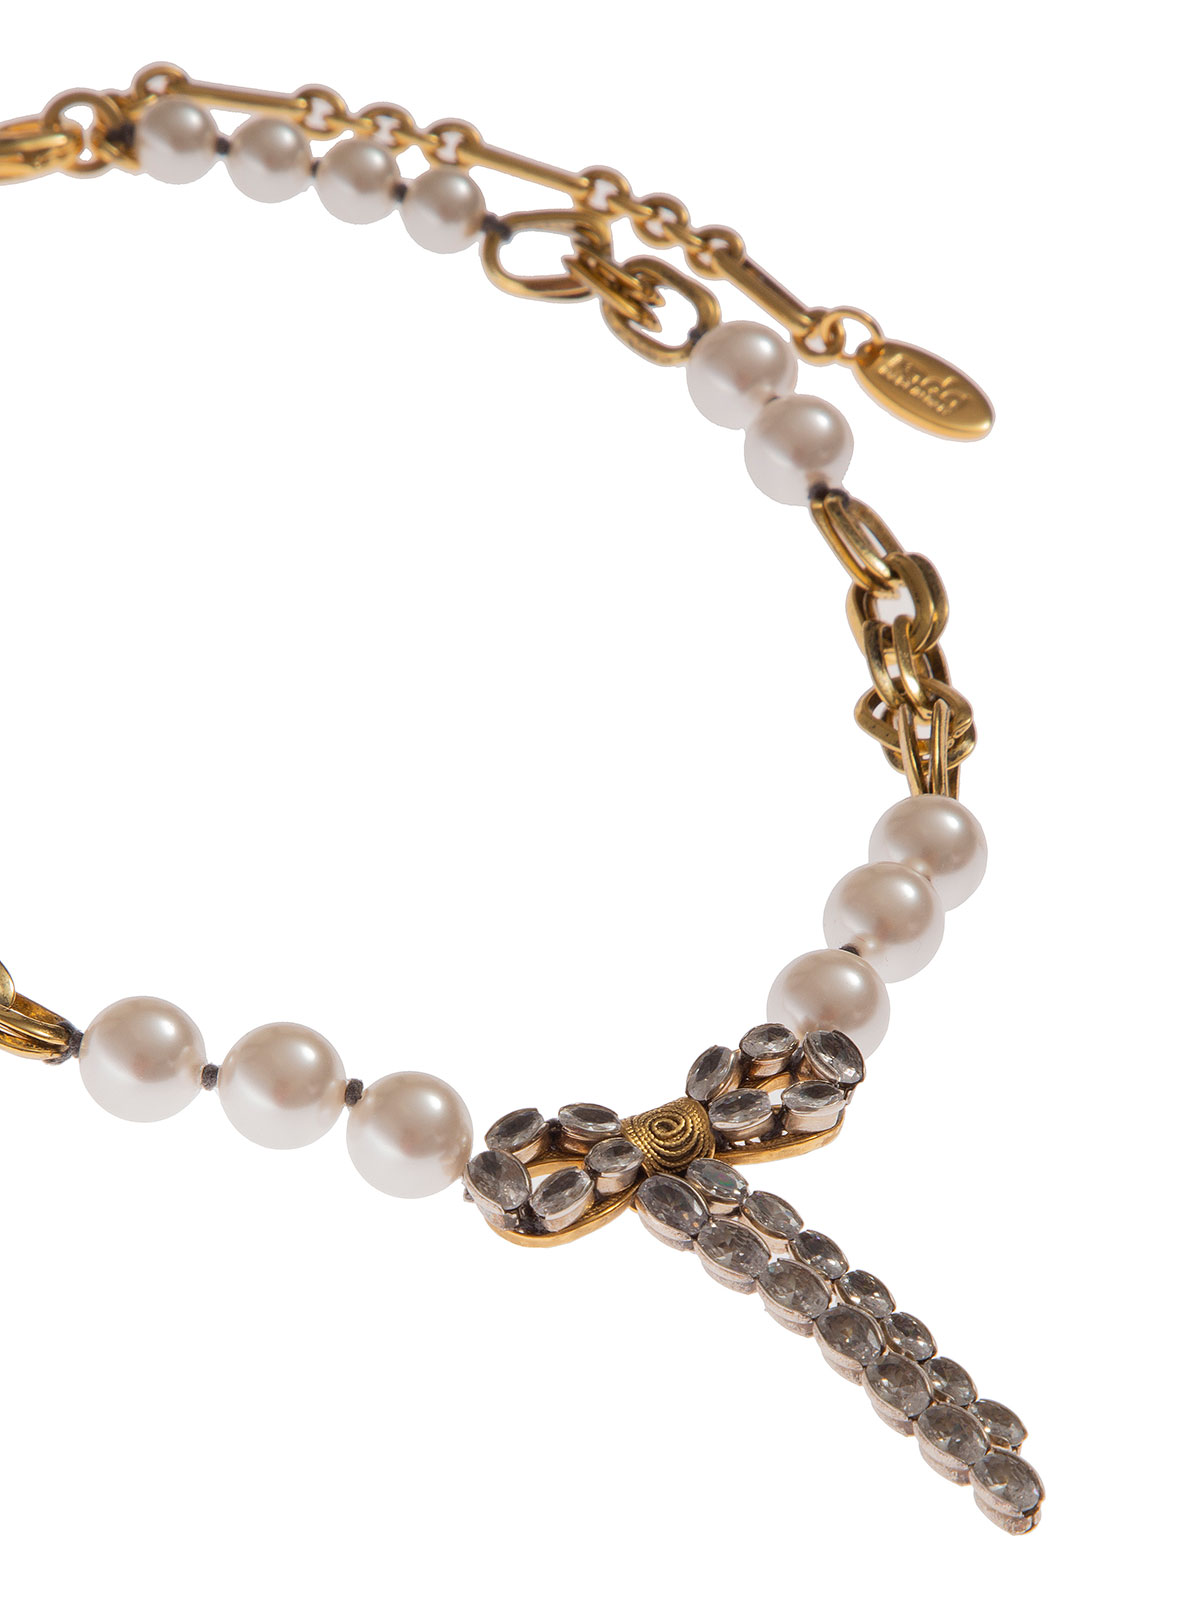 Collana di perle alternate a catene